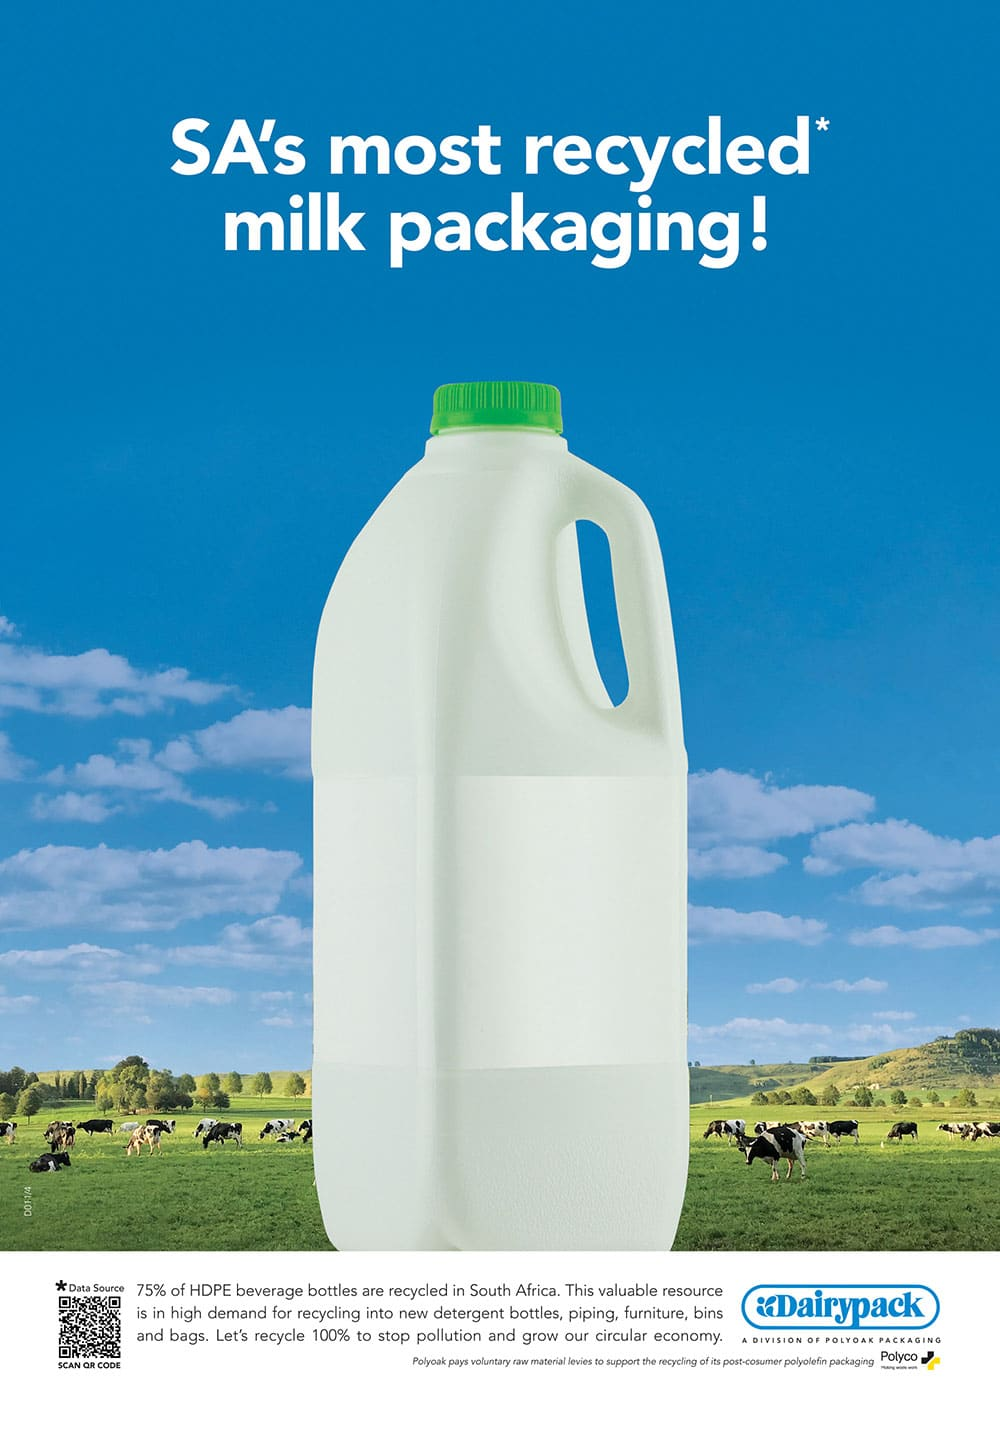 SA's most recycled milk packaging!